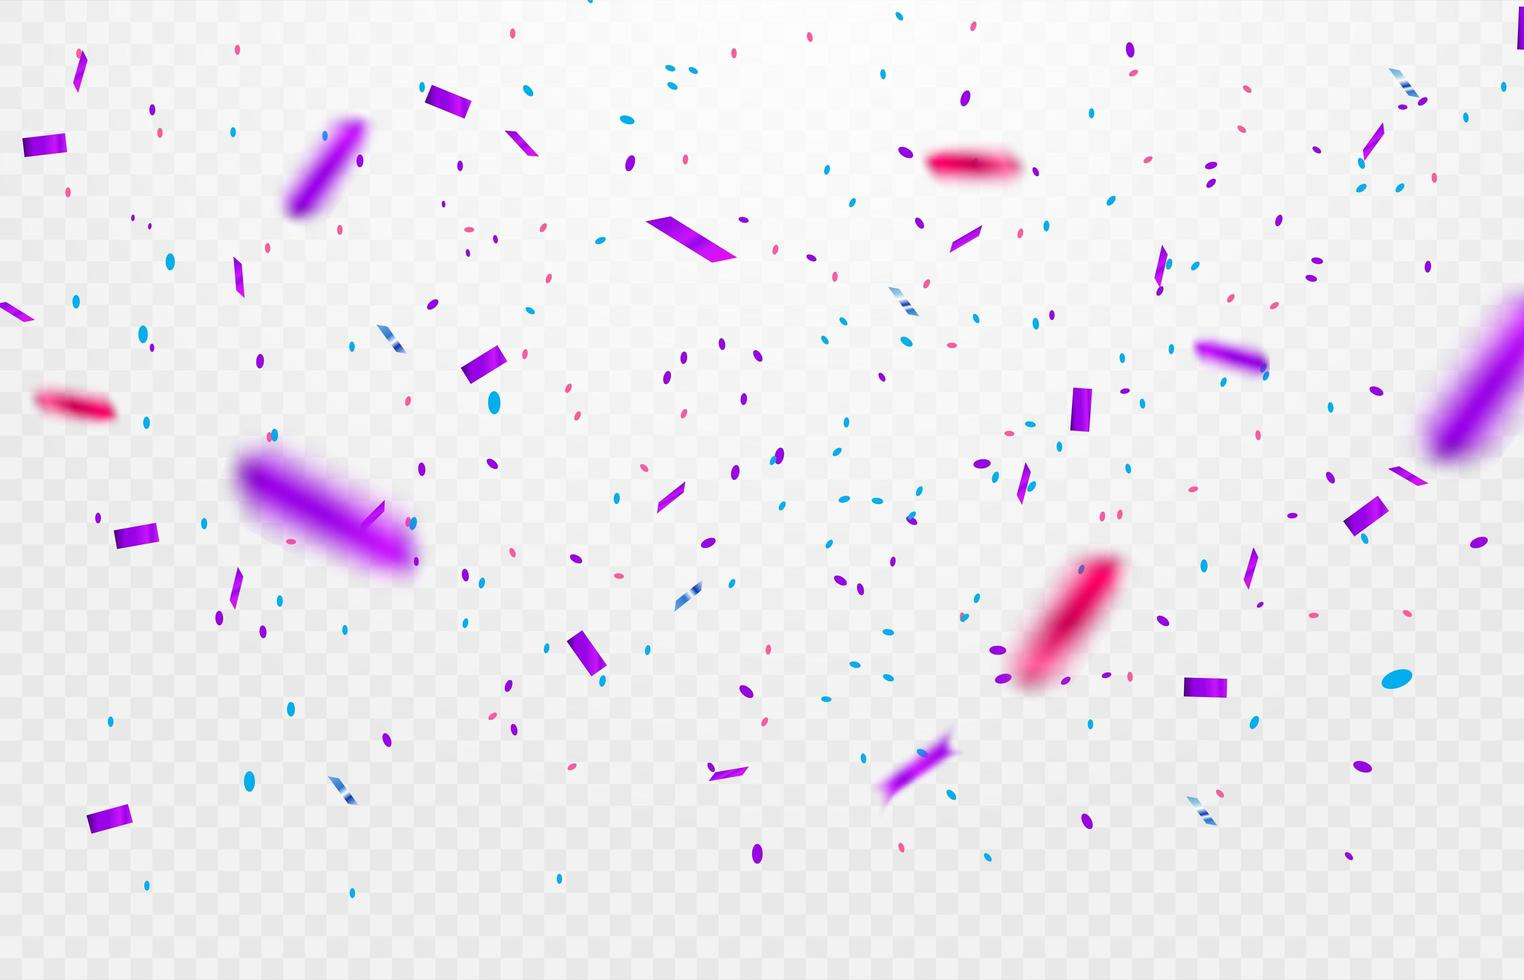 Confetti close-up achtergrond vector